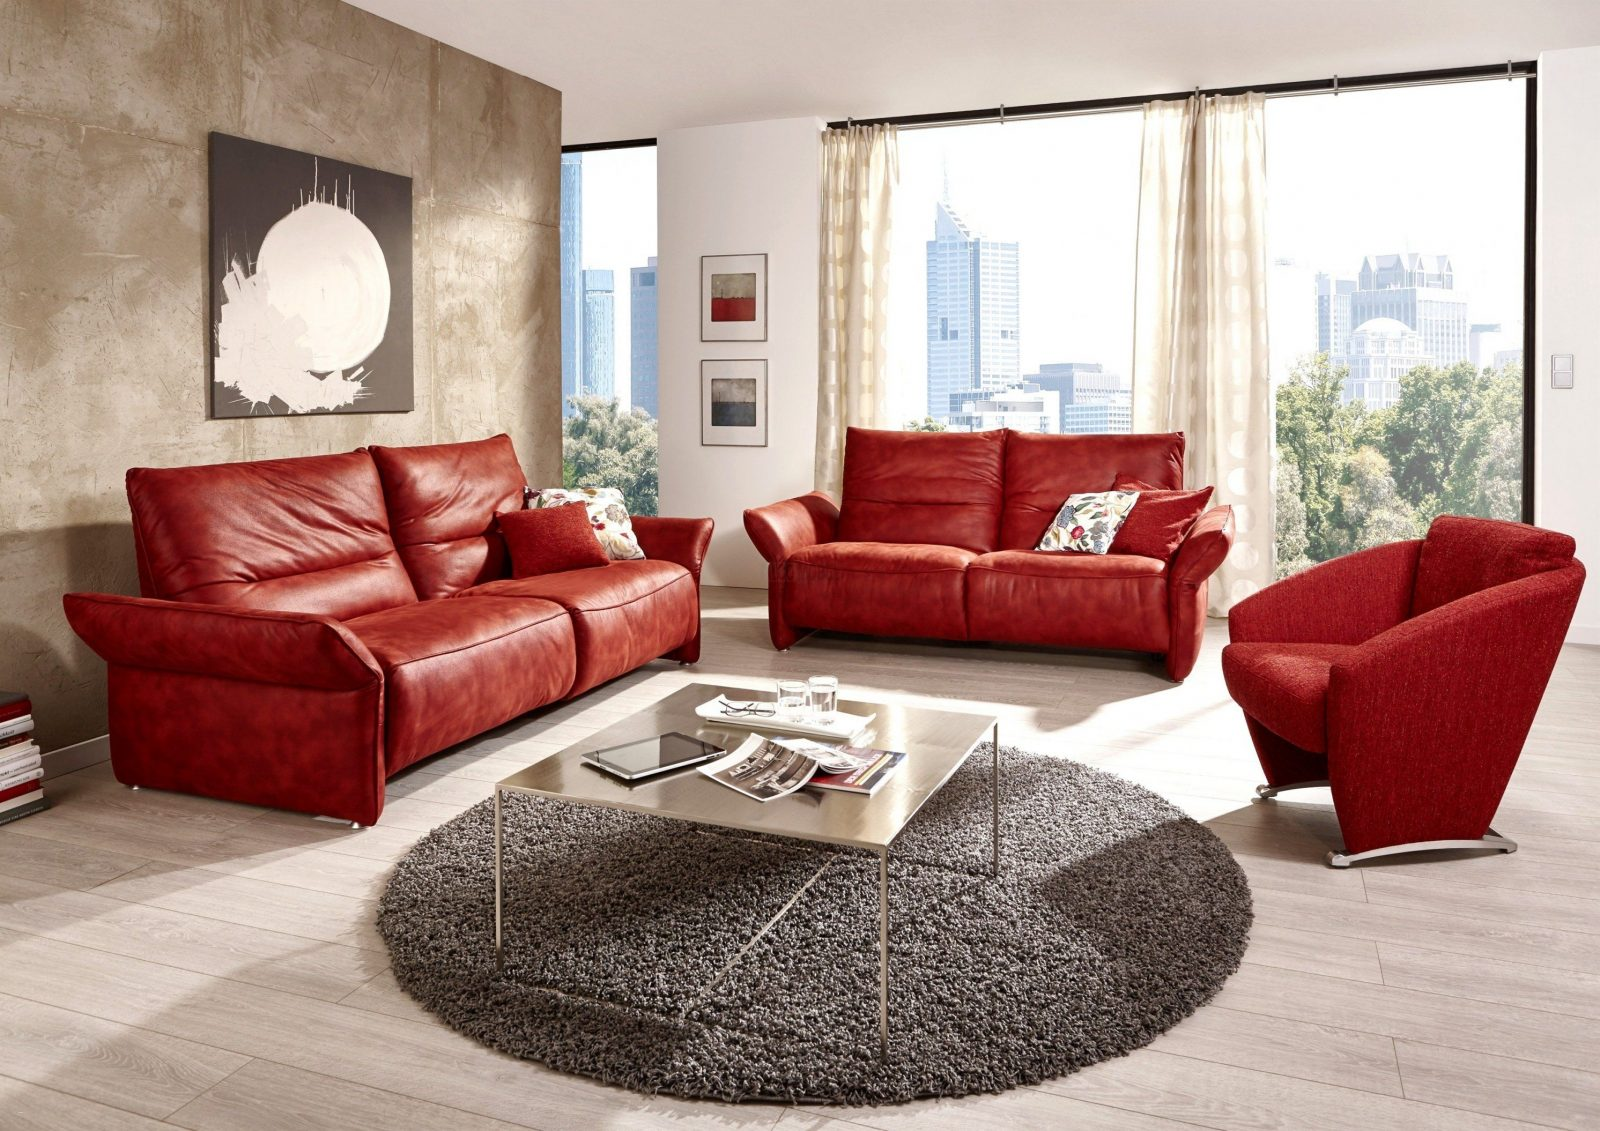 rote couch welche wandfarbe haus design ideen. Black Bedroom Furniture Sets. Home Design Ideas